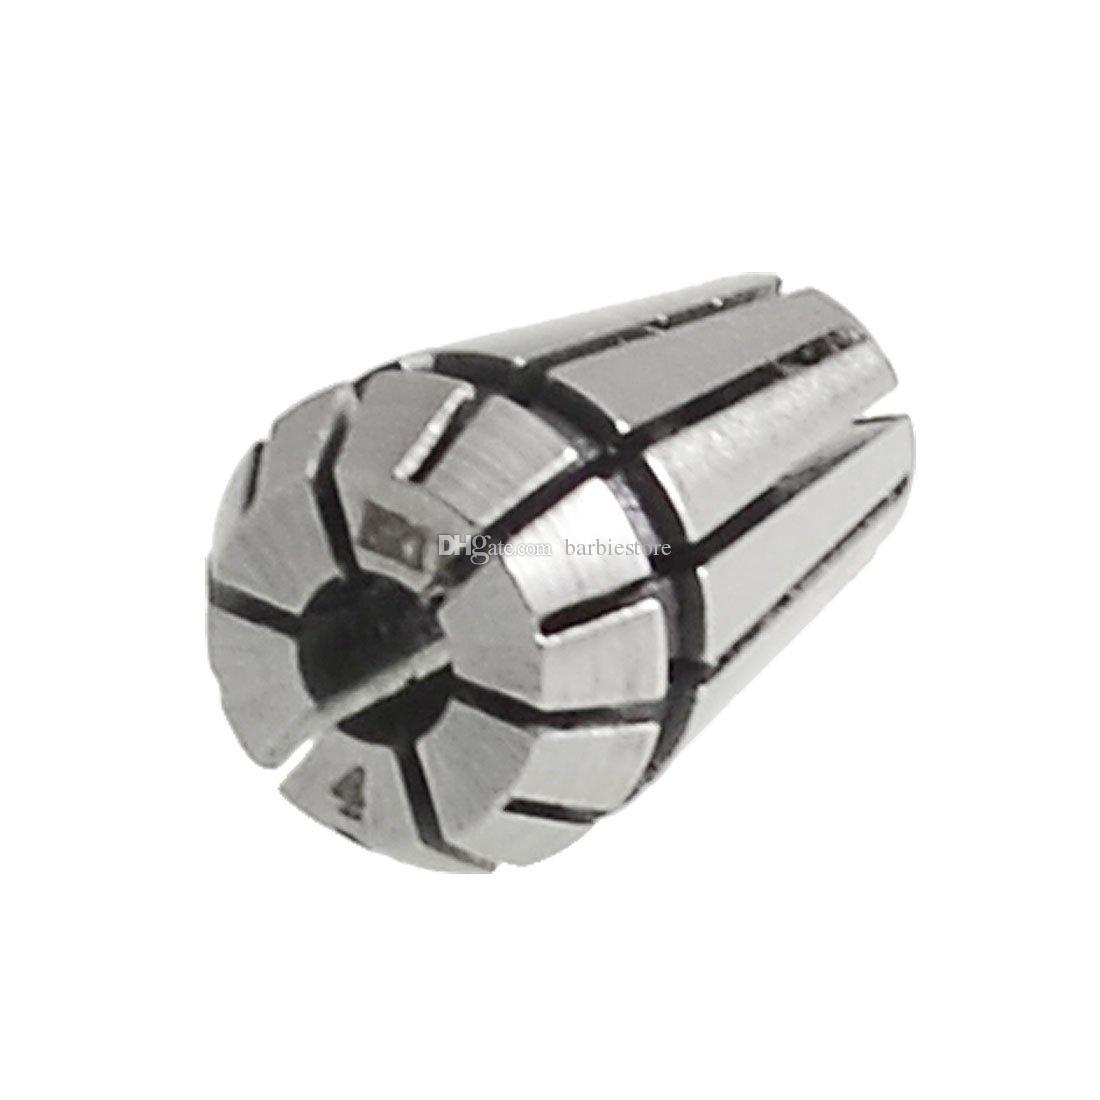 UPDATED TOP SUPER PRECISION CNC CHUCK MILL ER20 4MM COLLET